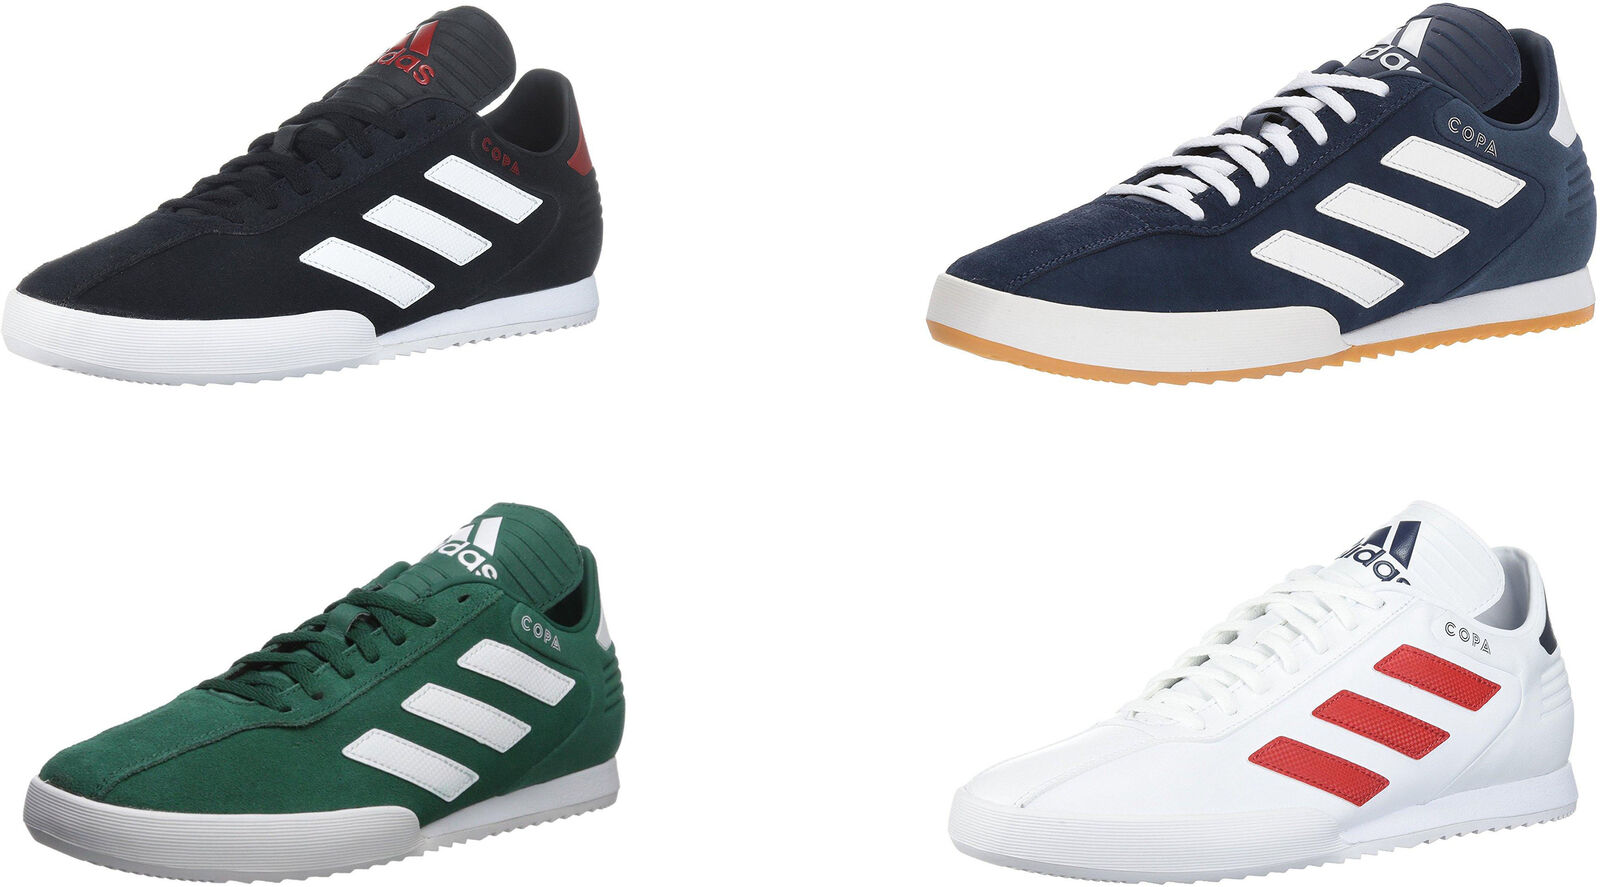 hot sales ed3b4 b2b6b adidas Originals Mens Copa Super Shoes, 4 Colors